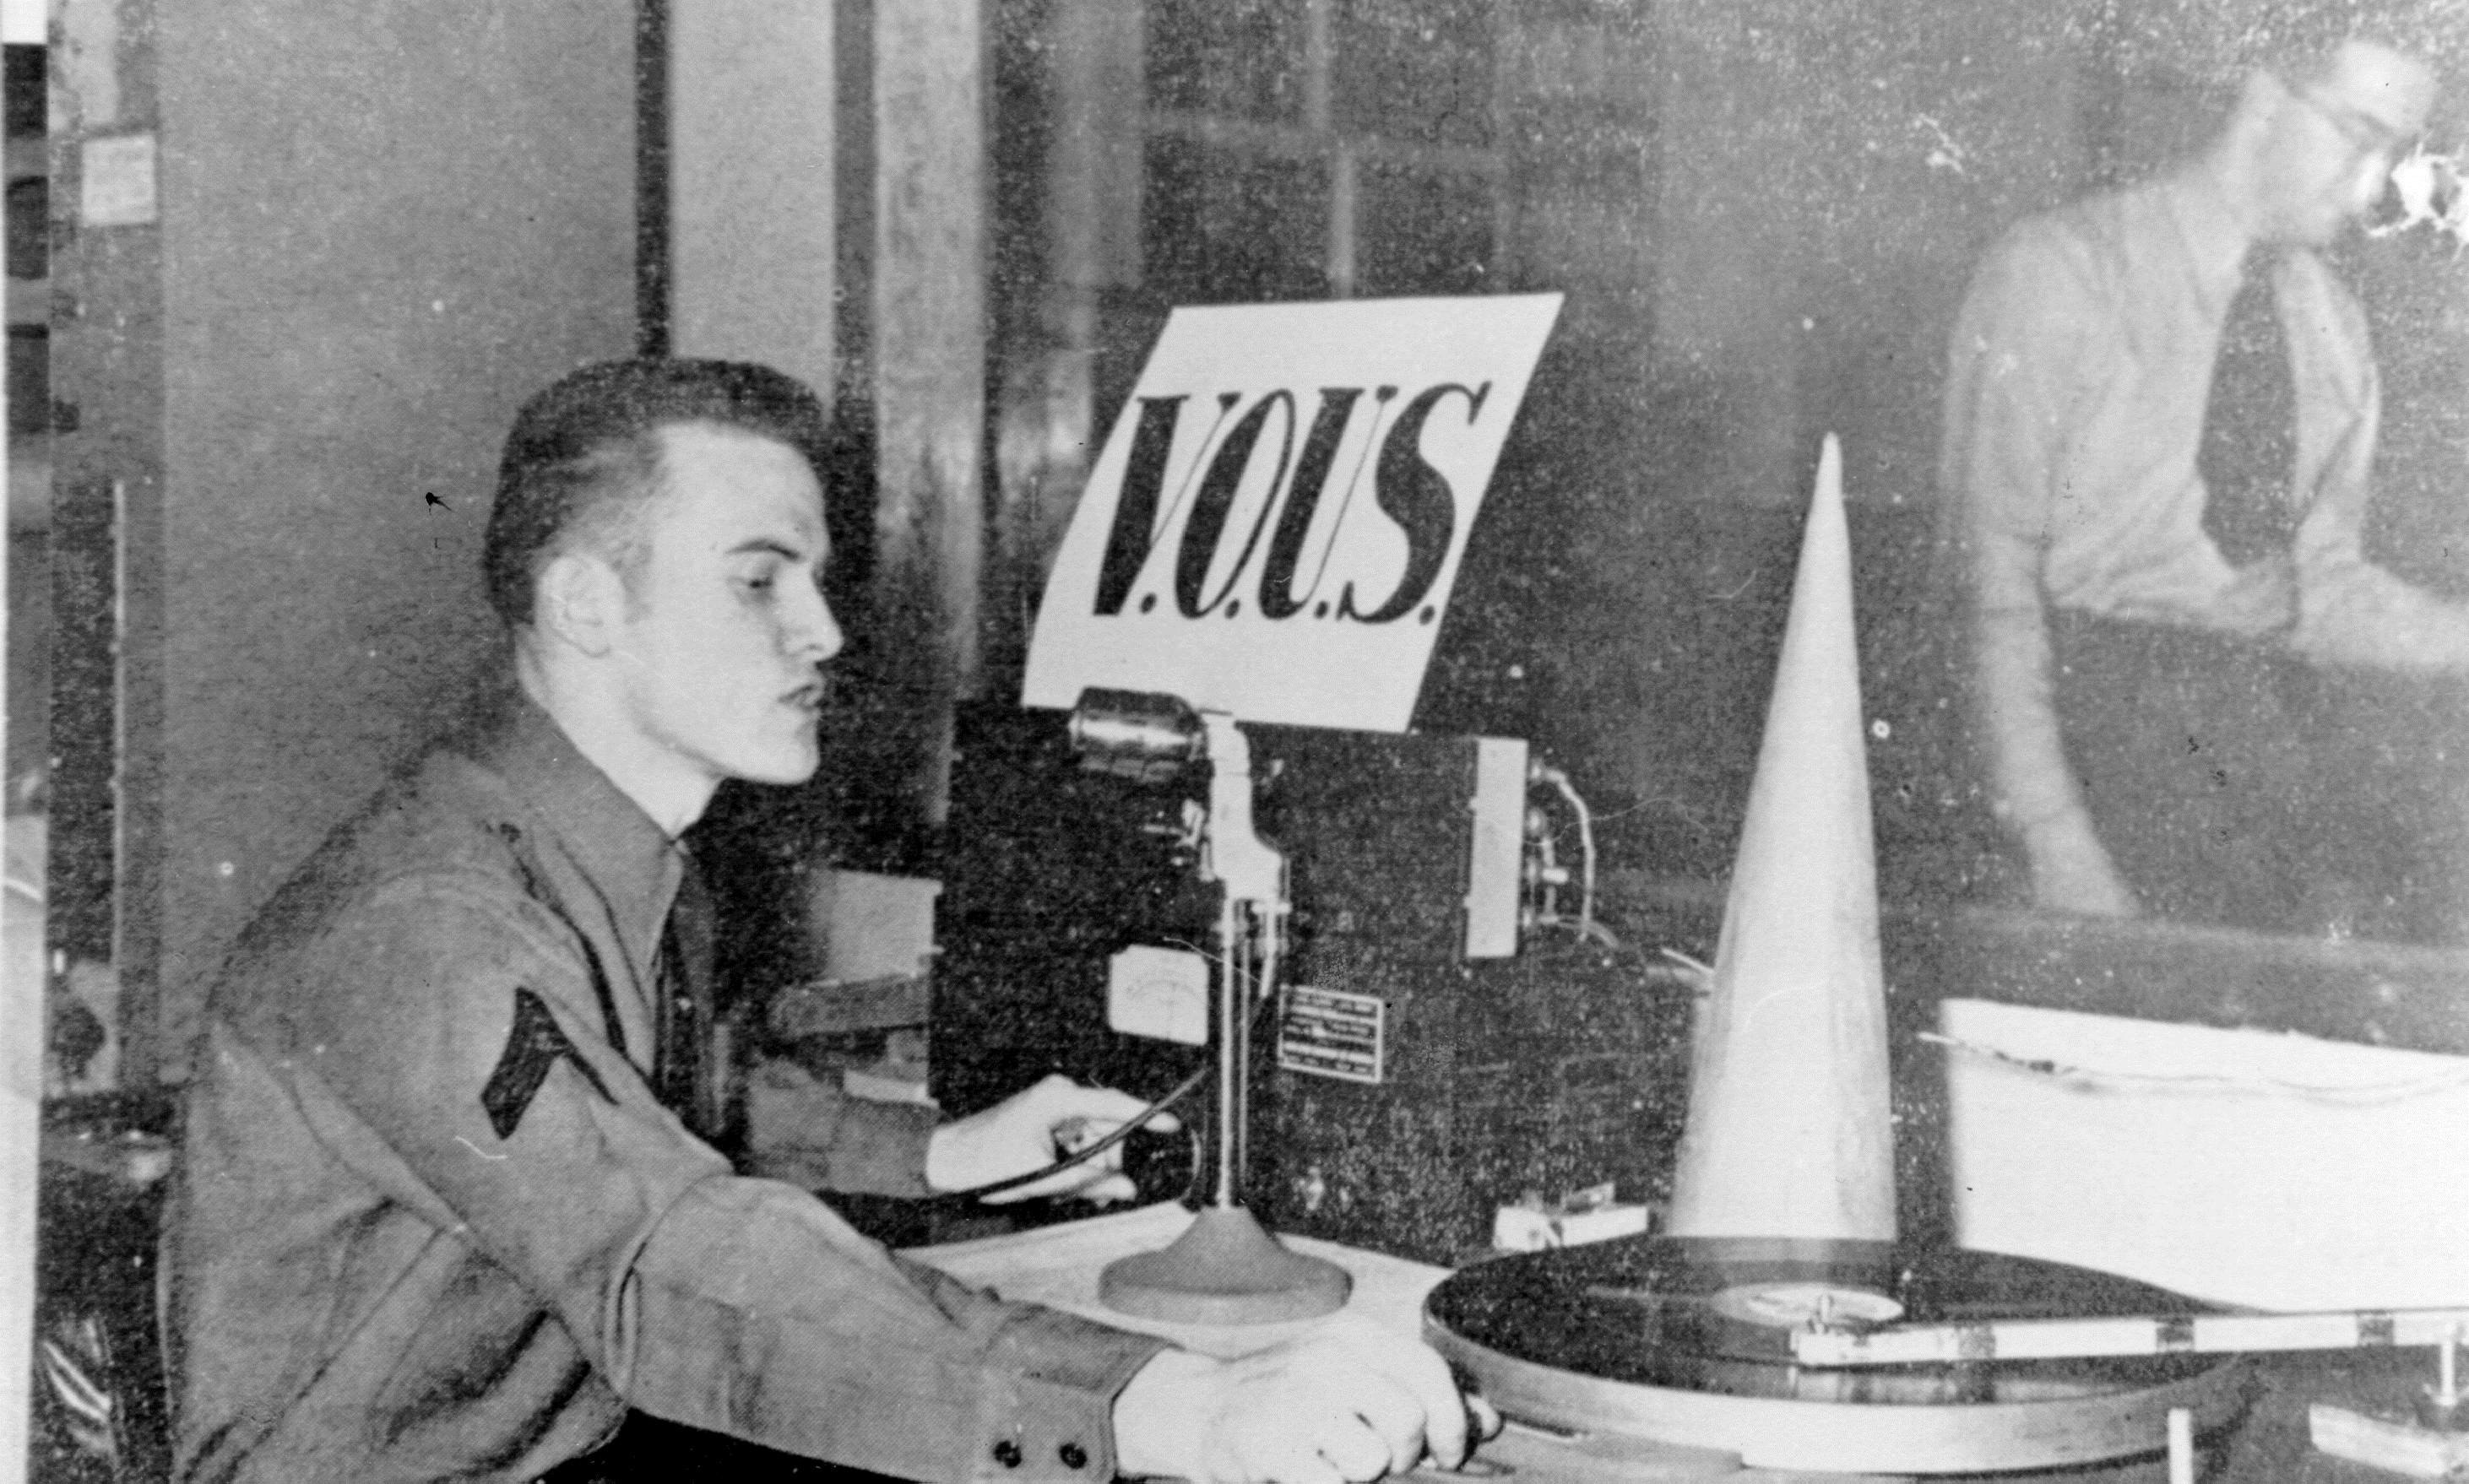 An undated photo of Fort Pepperrell's radio station, VOUS. (MUN Maritime History Archive)